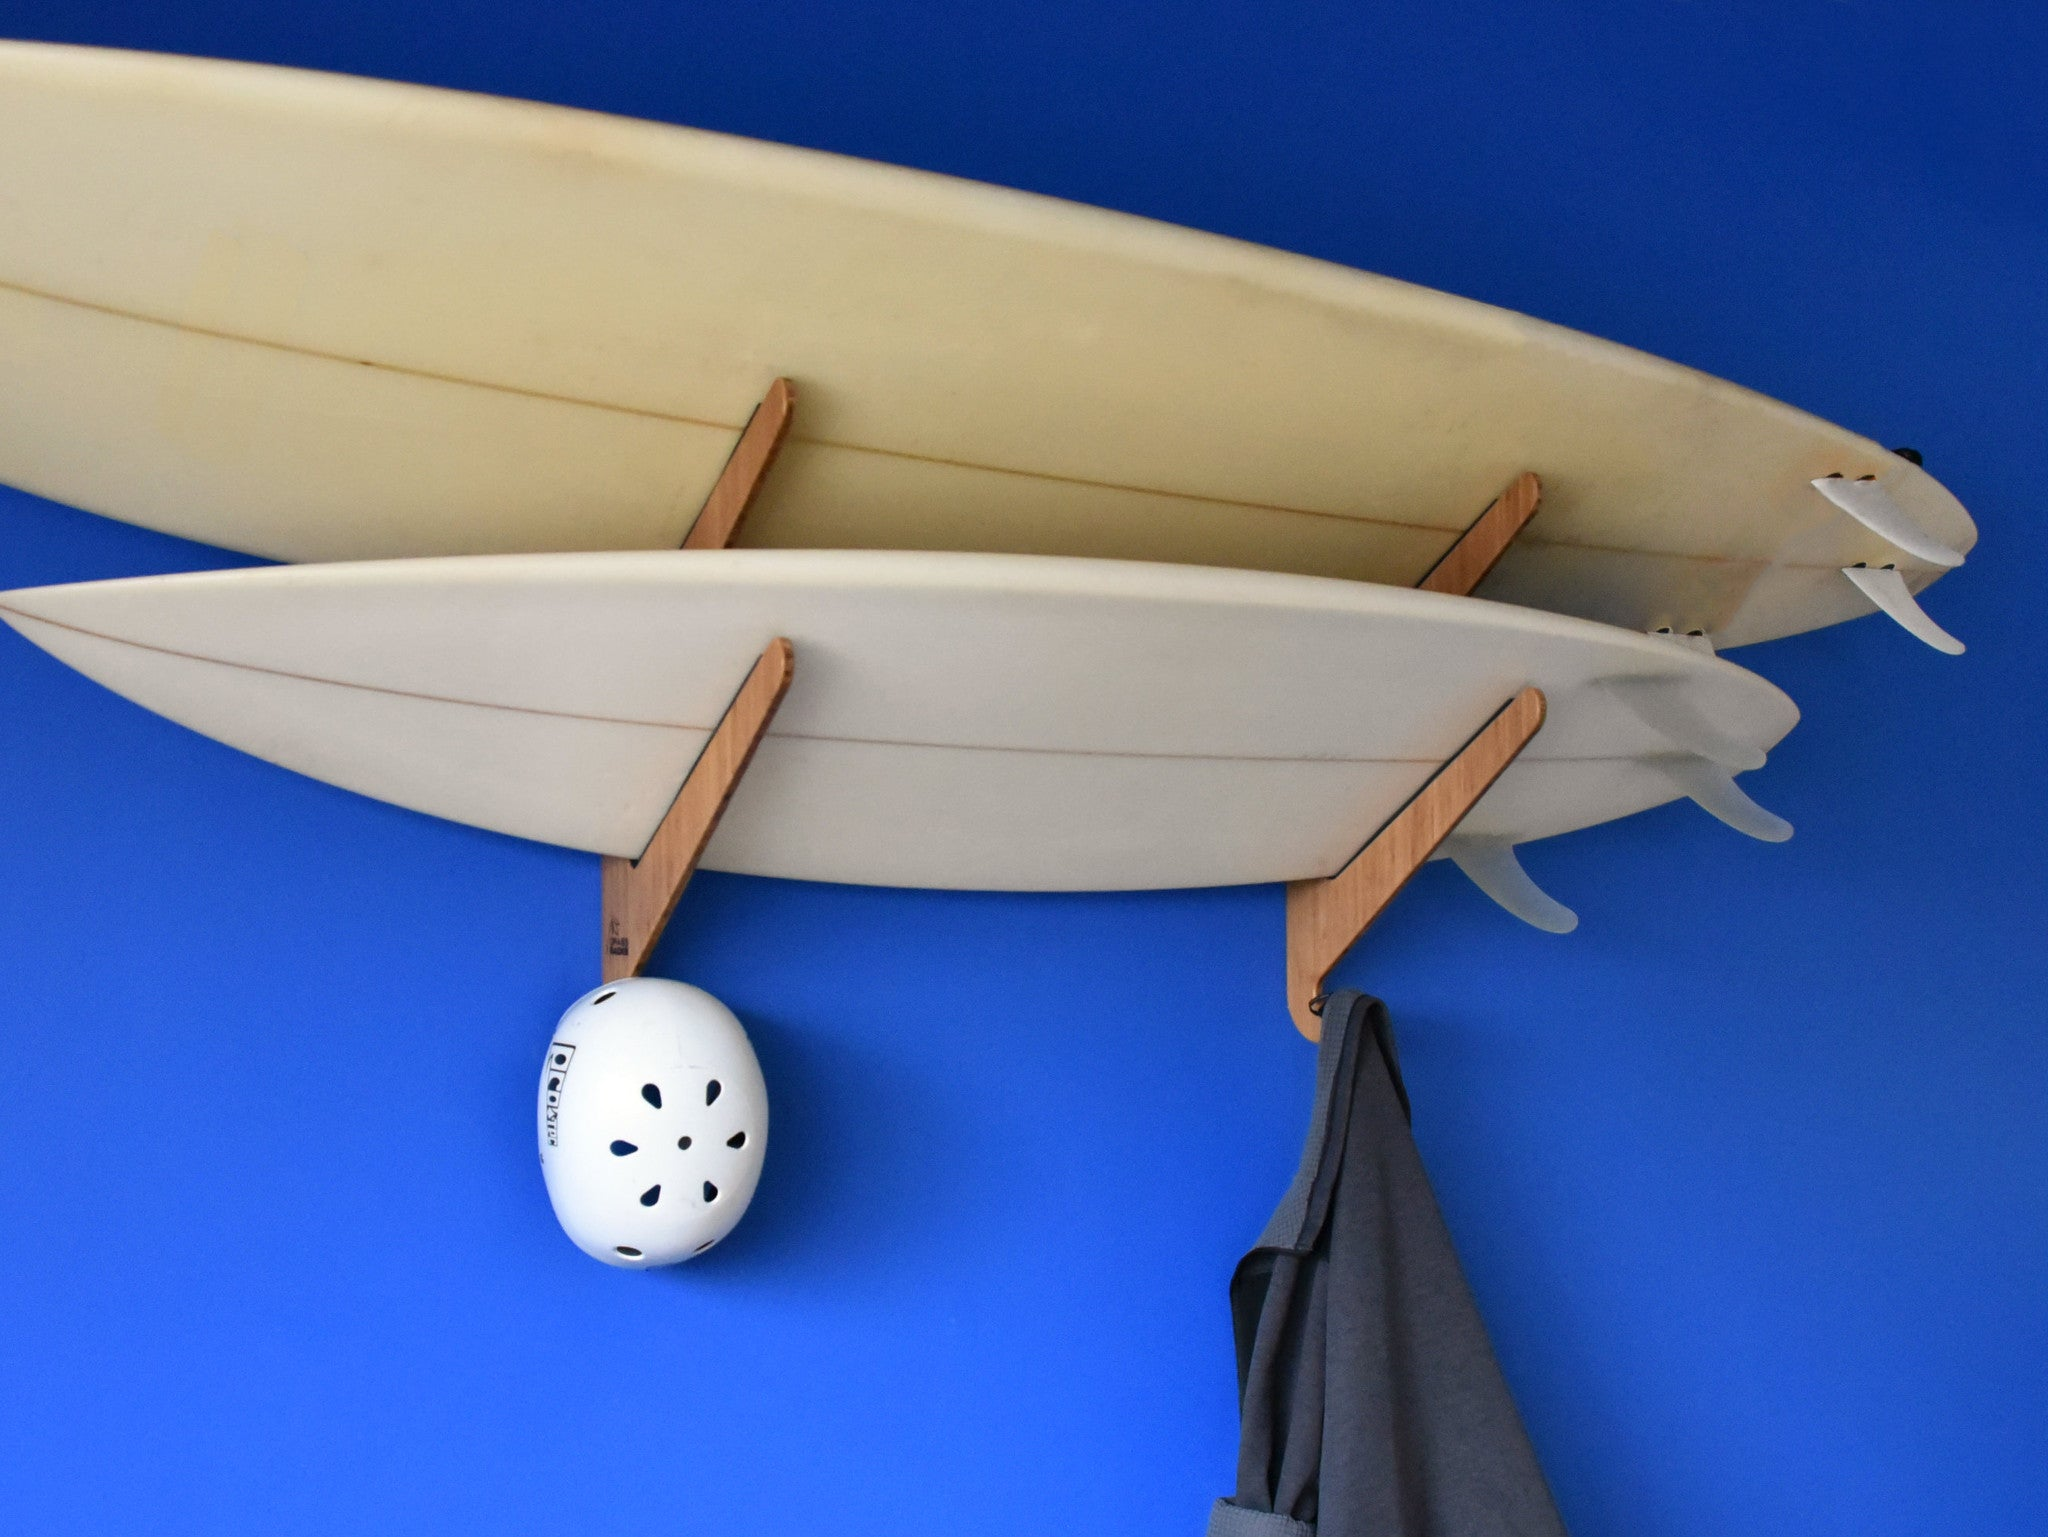 The Kaua'i Series - Bamboo Surfboard Rack